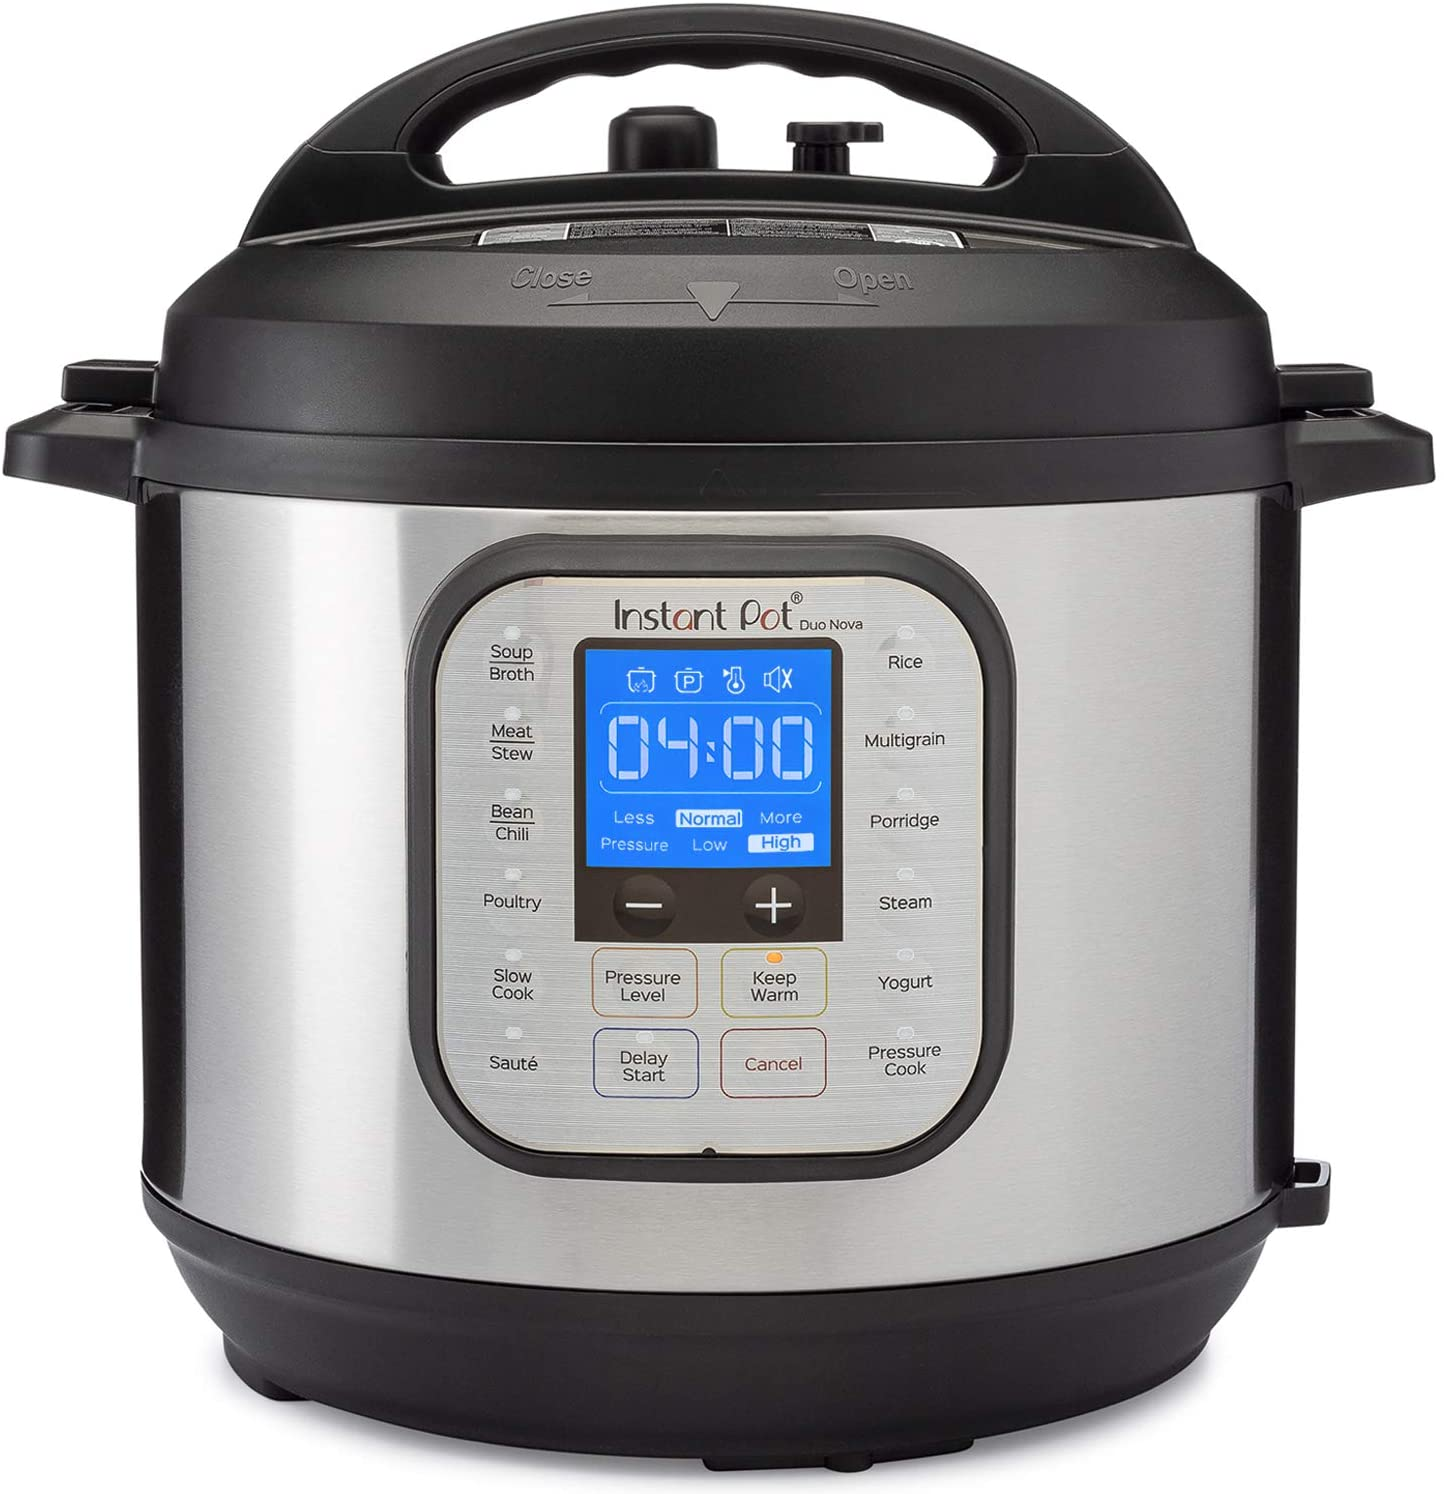 Instant Pot Pressure Cooker 7 in 1, 6 Qt. Meals can be fast and easy for mom. An appliance she will love.